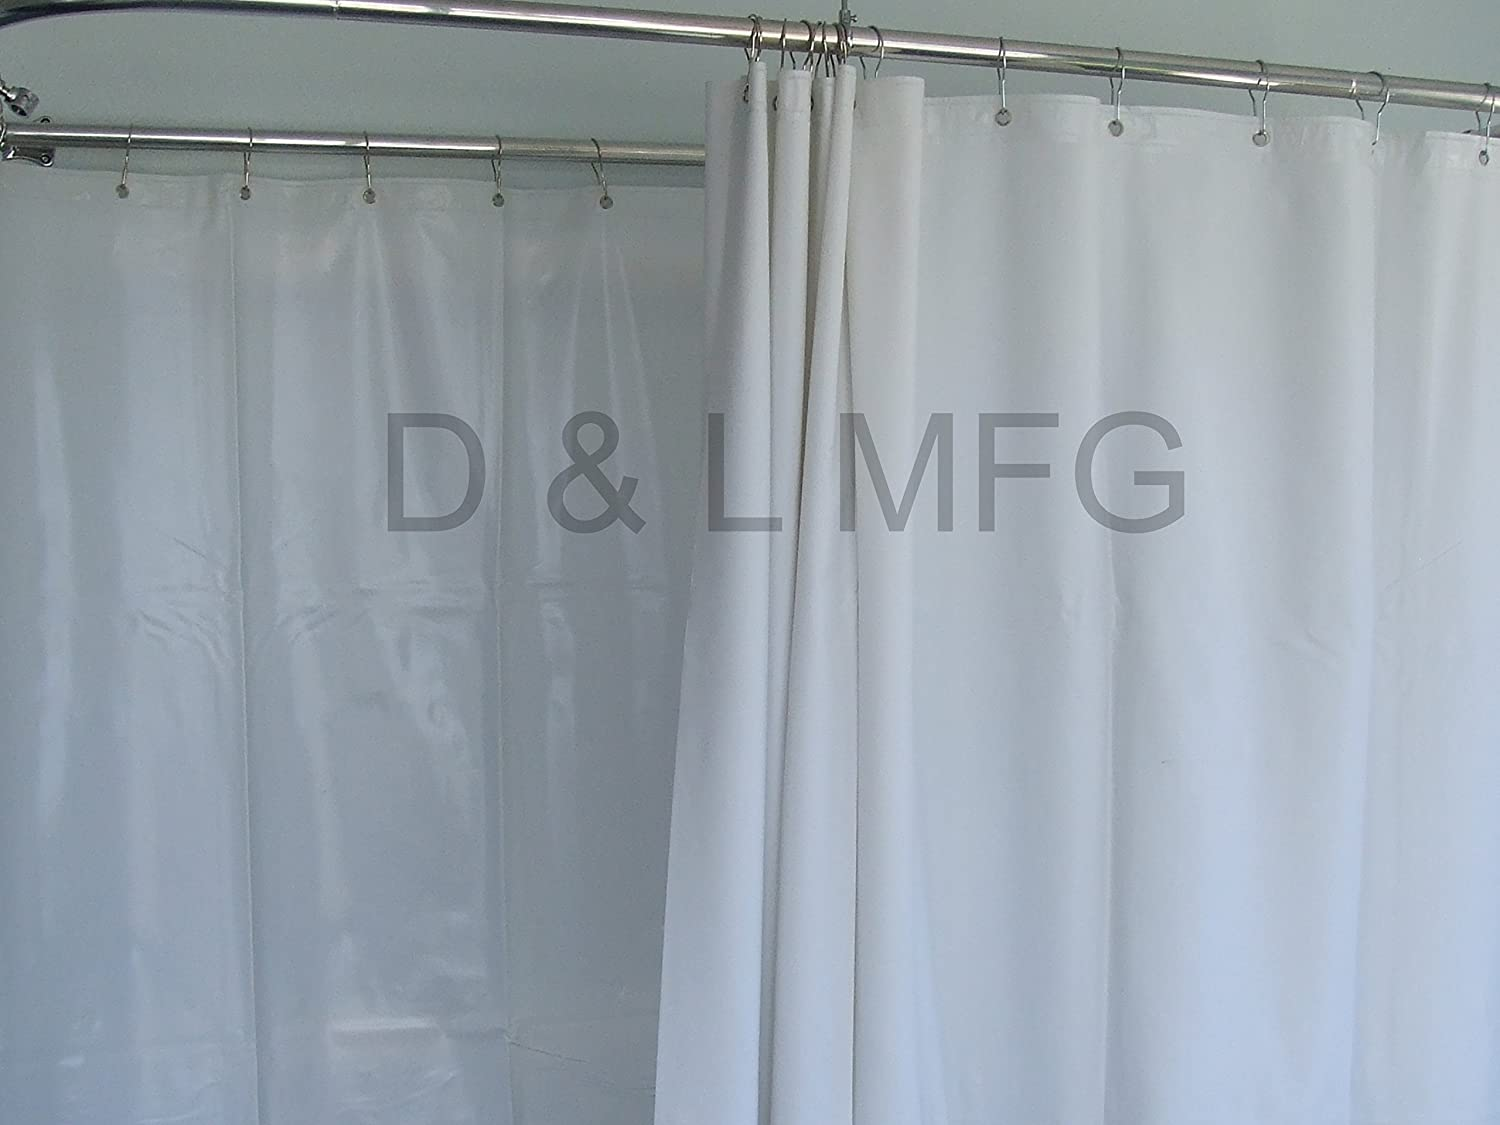 Amazon.com: D&L Extra Wide Vinyl Shower Curtain for a Clawfoot Tub ...